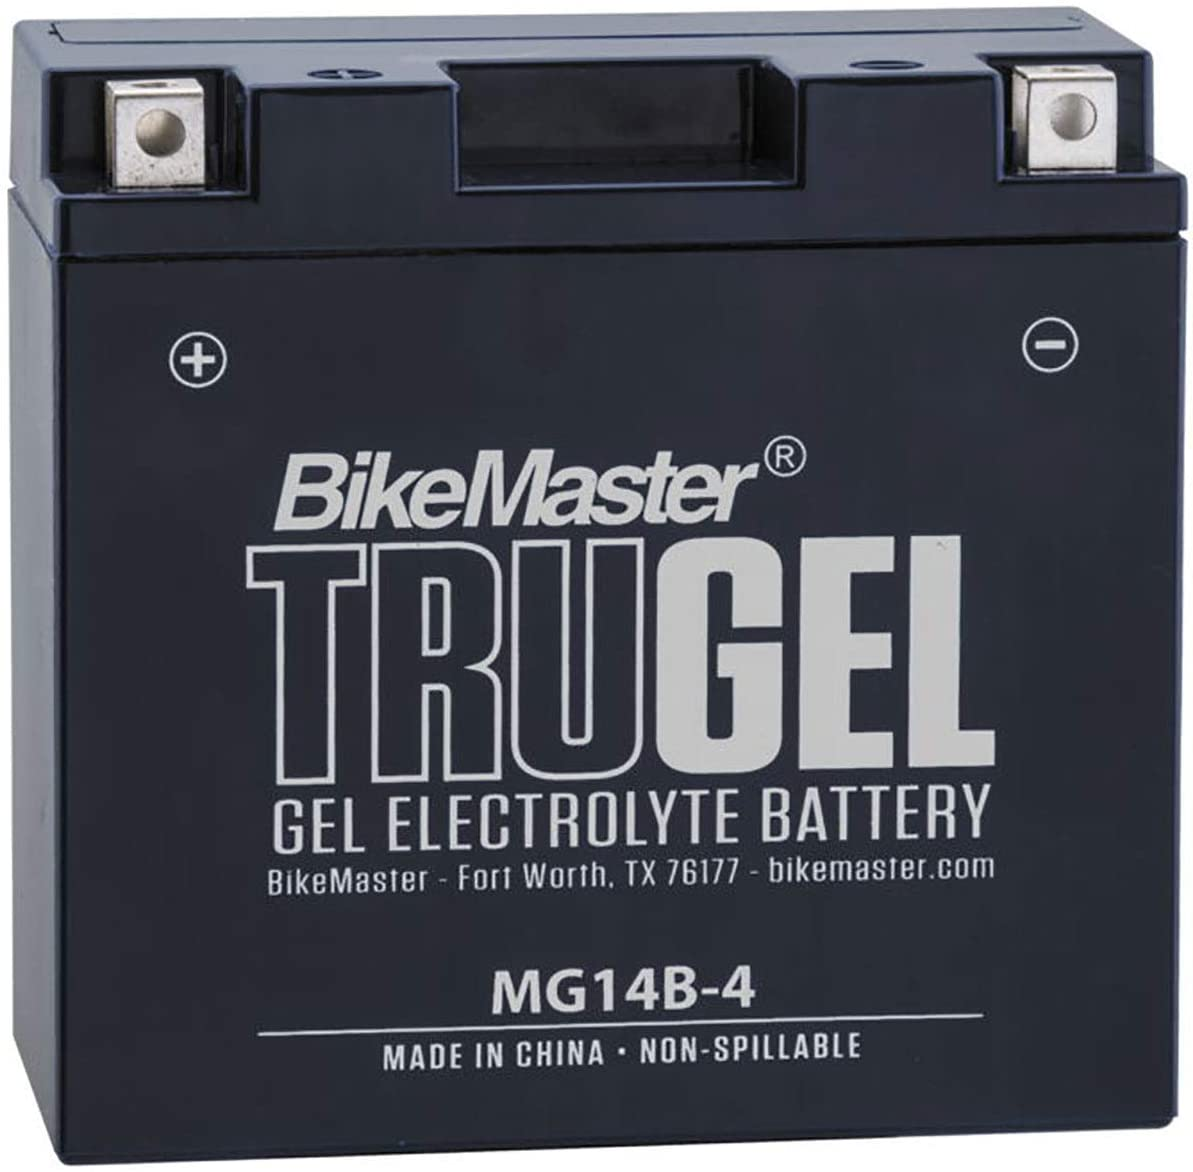 BikeMaster MG14B-4 TruGel Motorcycle Battery - 150L x 69W x 145H mm